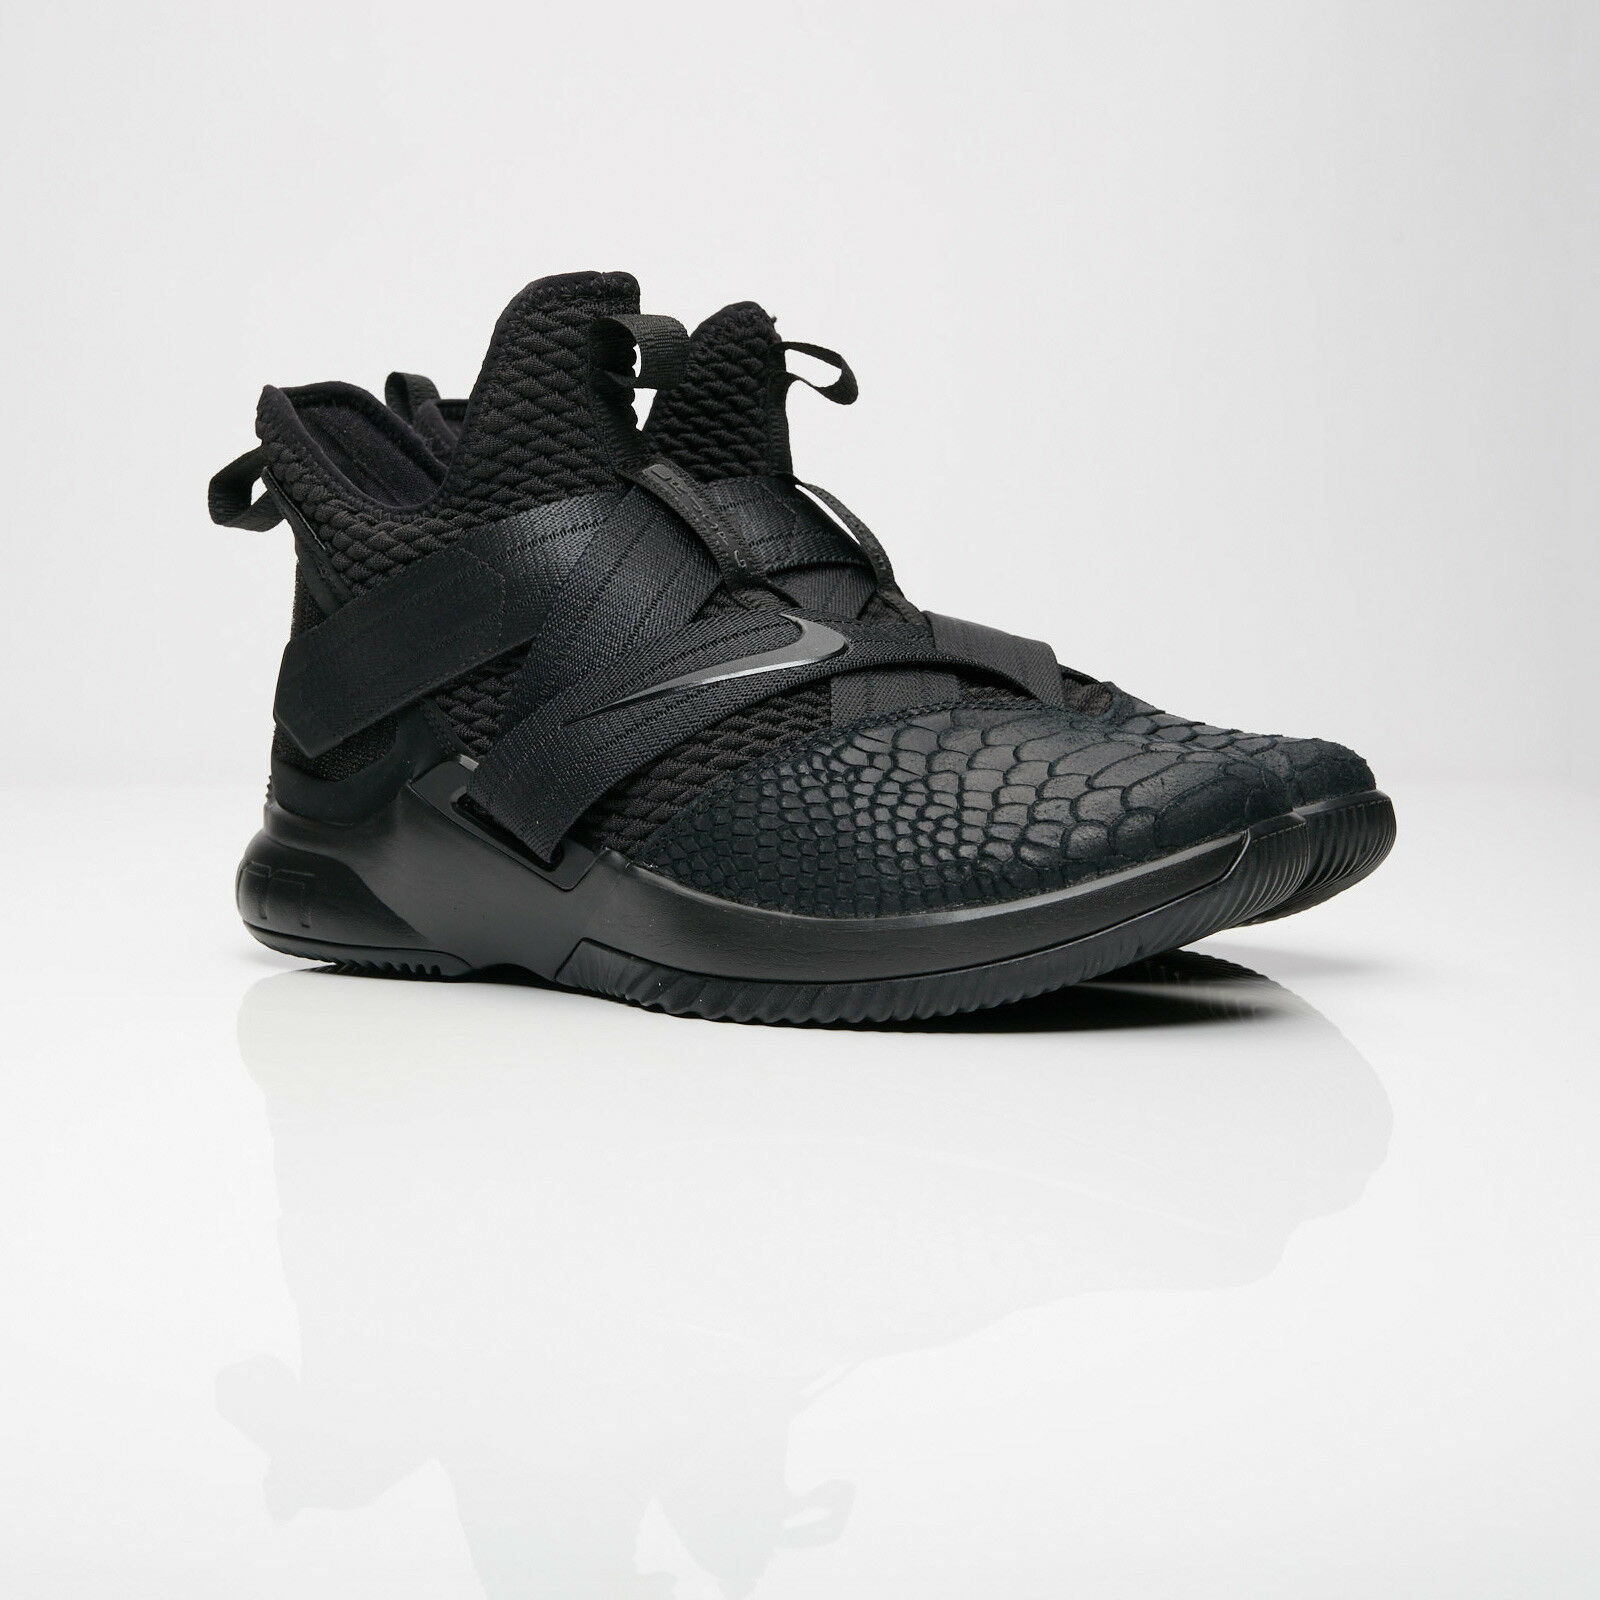 hommes Nike Lebron Soldier XII couplant Basket Noir Taille 8-13 New in Box AO4054-003